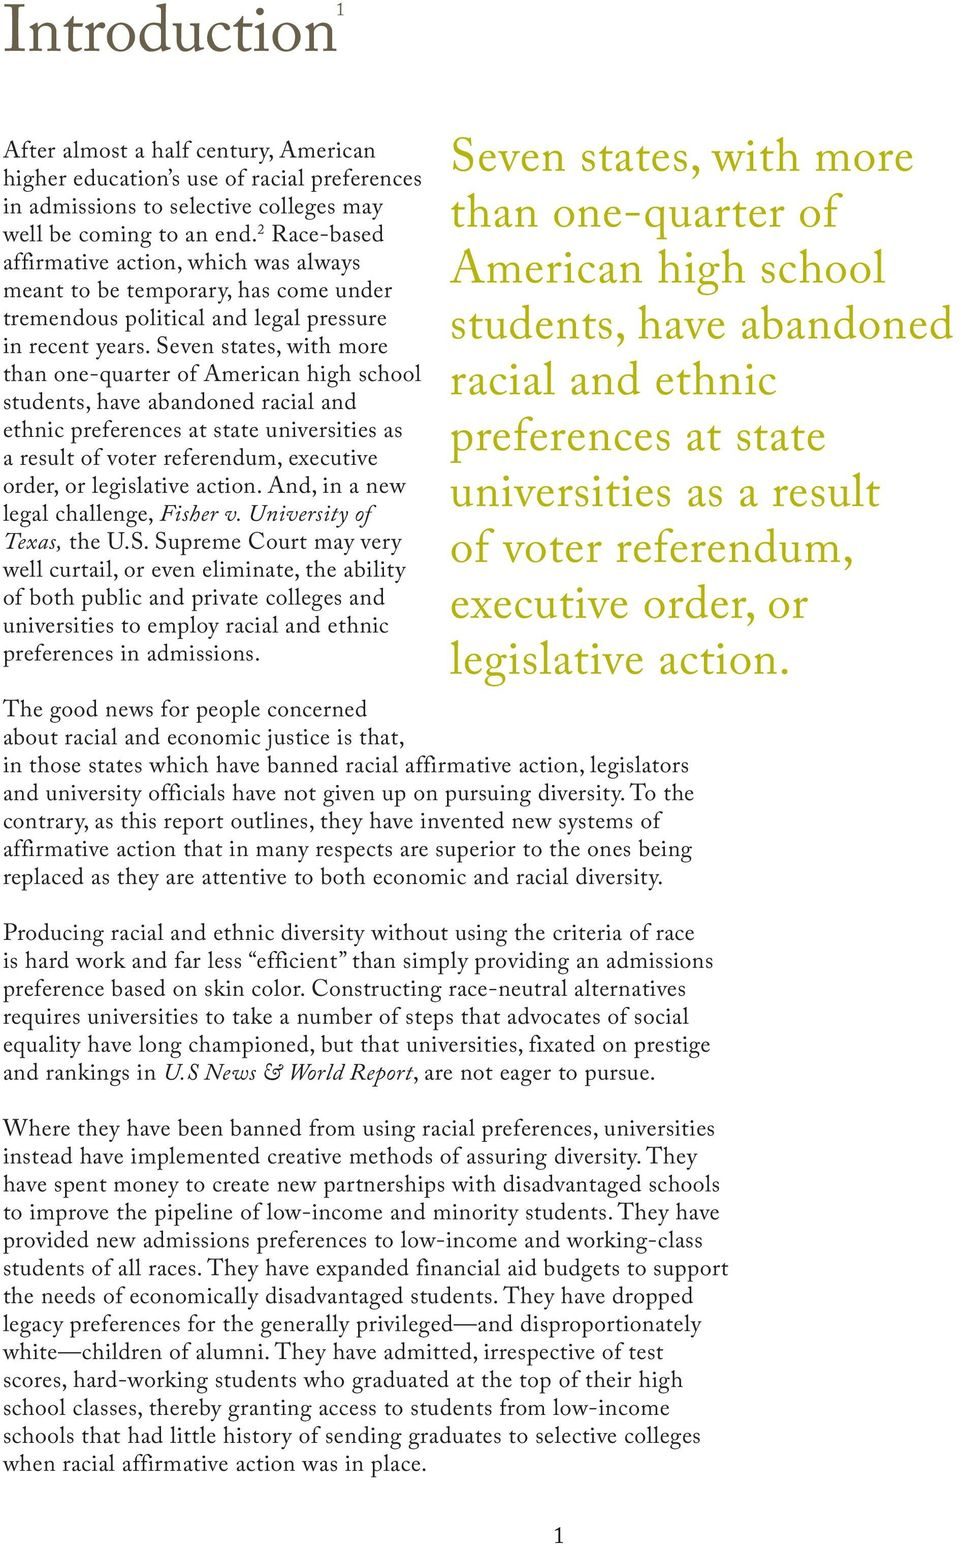 Seven states, with more than one-quarter of American high school students, have abandoned racial and ethnic preferences at state universities as a result of voter referendum, executive order, or